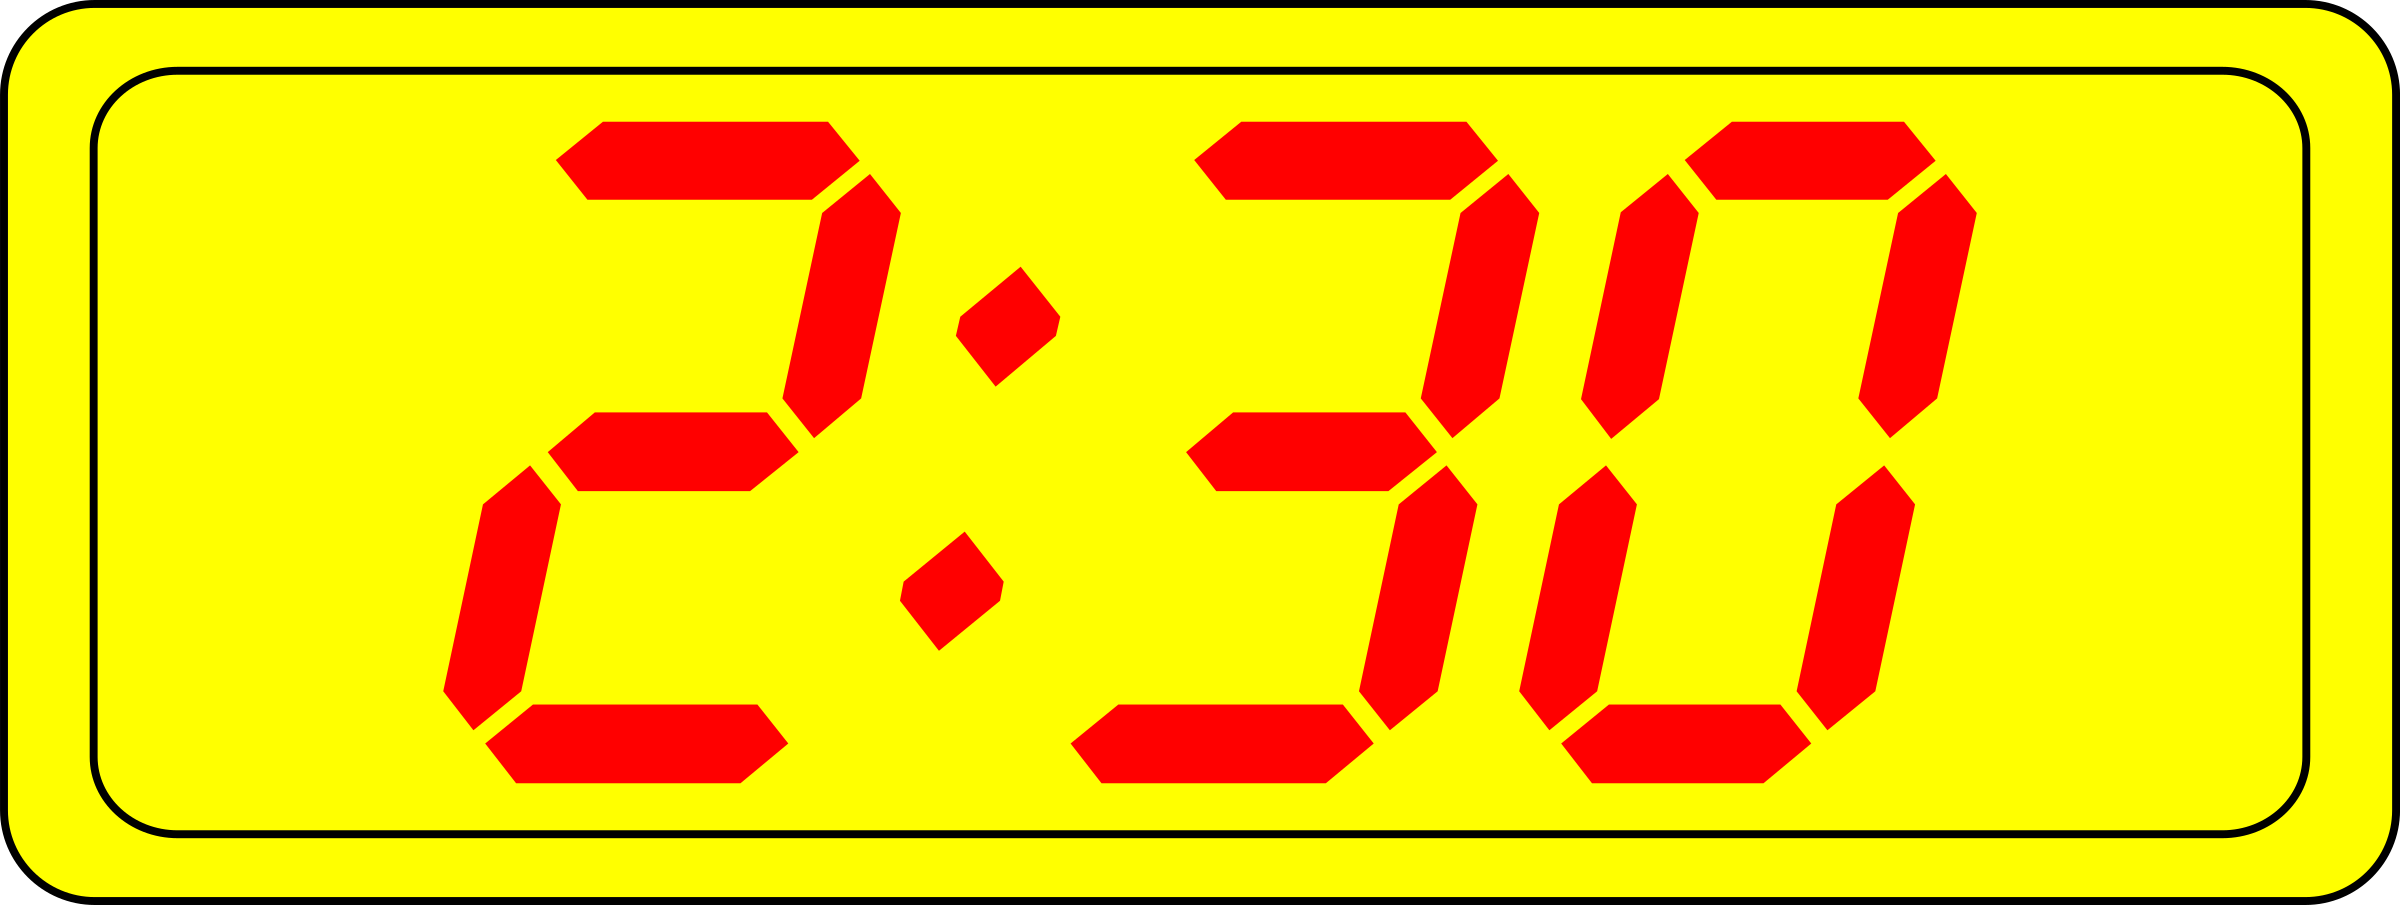 Digital Clock Clipart 3 00.